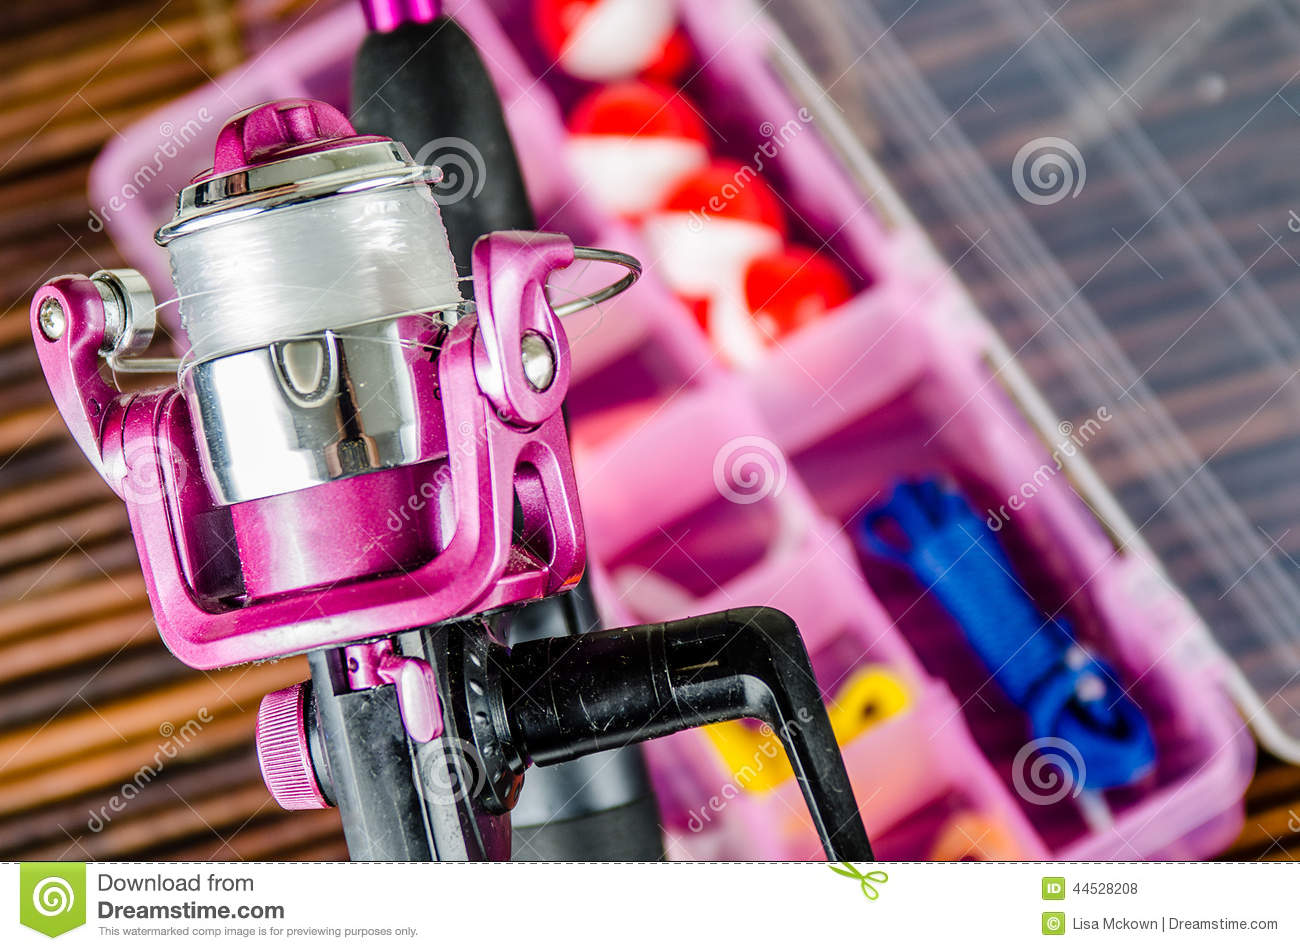 Fishing pole and tackle in pink stock photo image 44528208 for Pink fishing gear